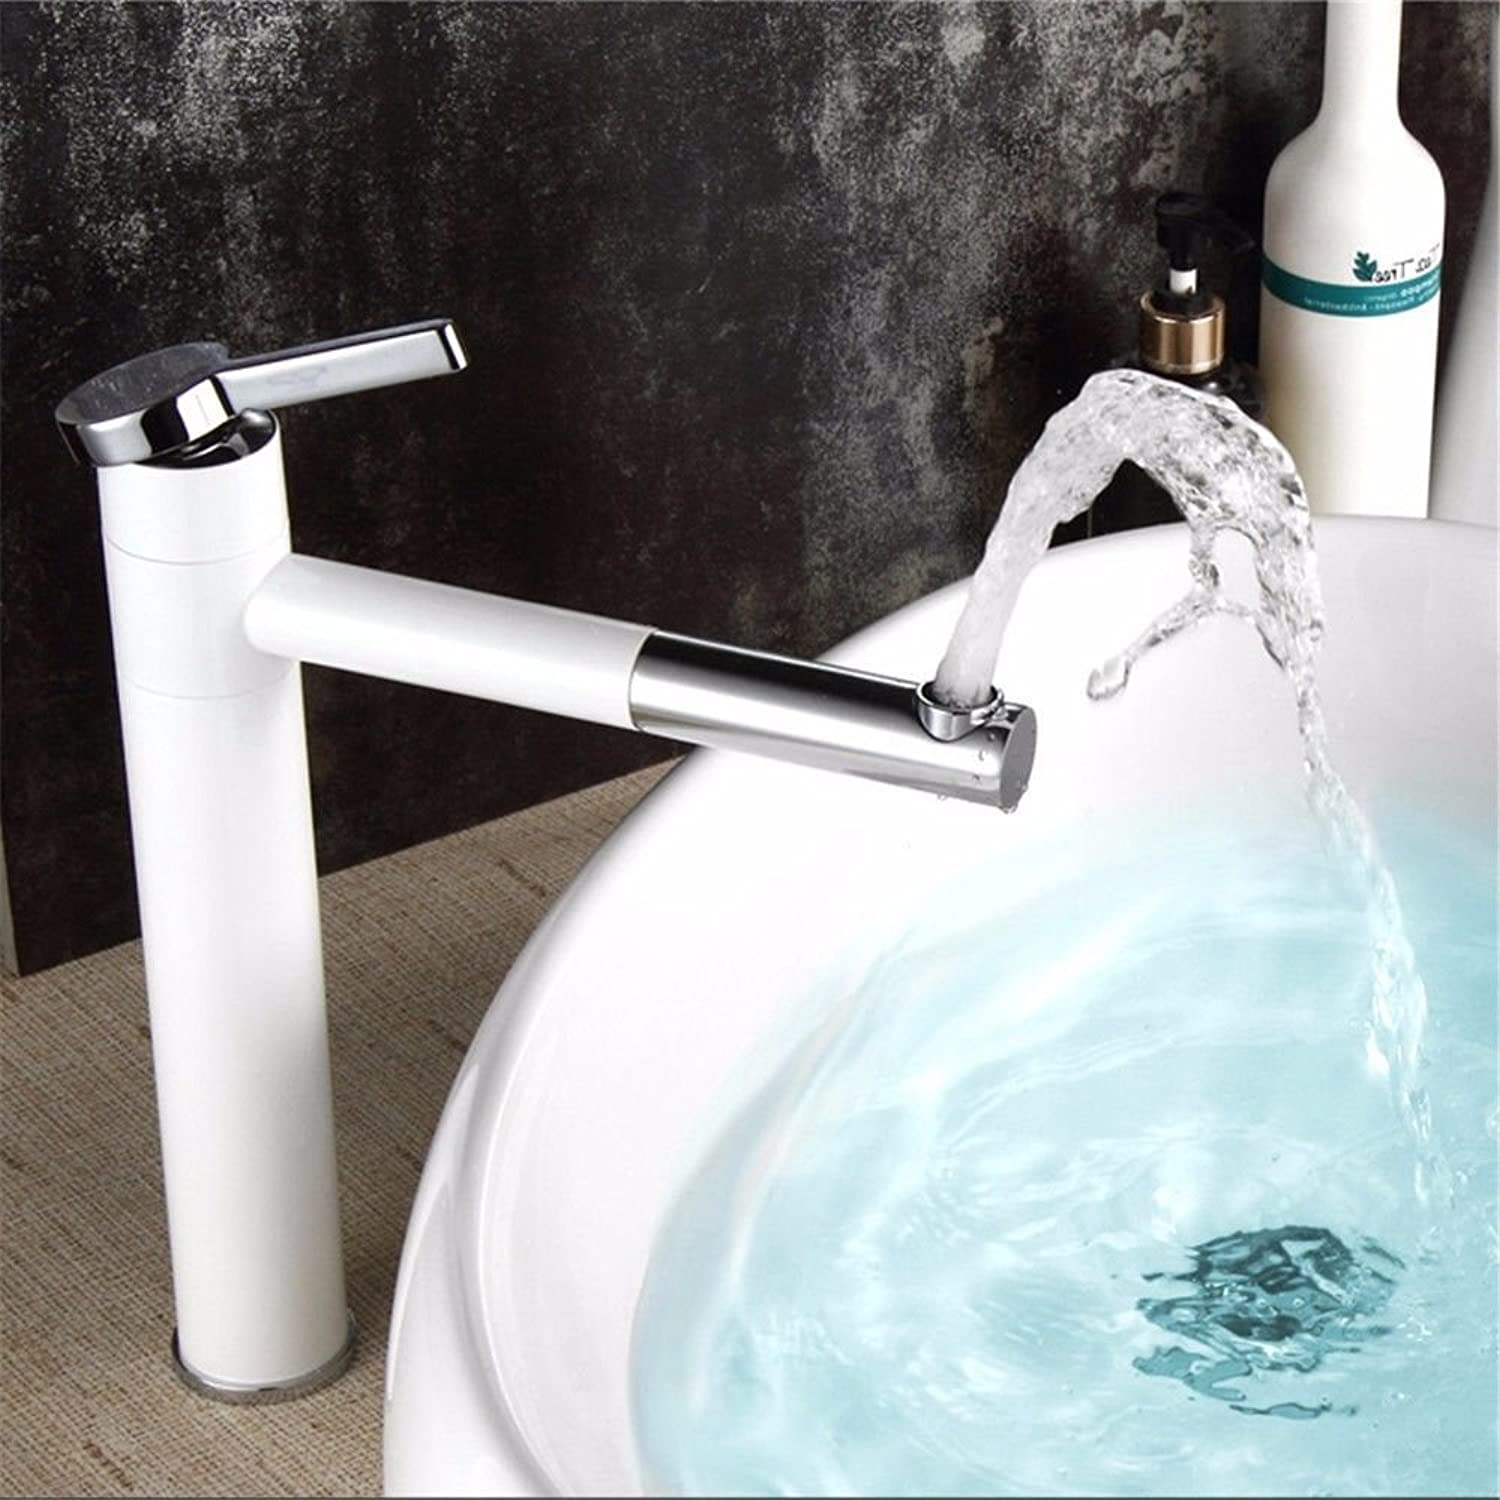 Pengei Tap Basin Mixer Kitchen Sink Mixer Faucet redary White Counter Basin